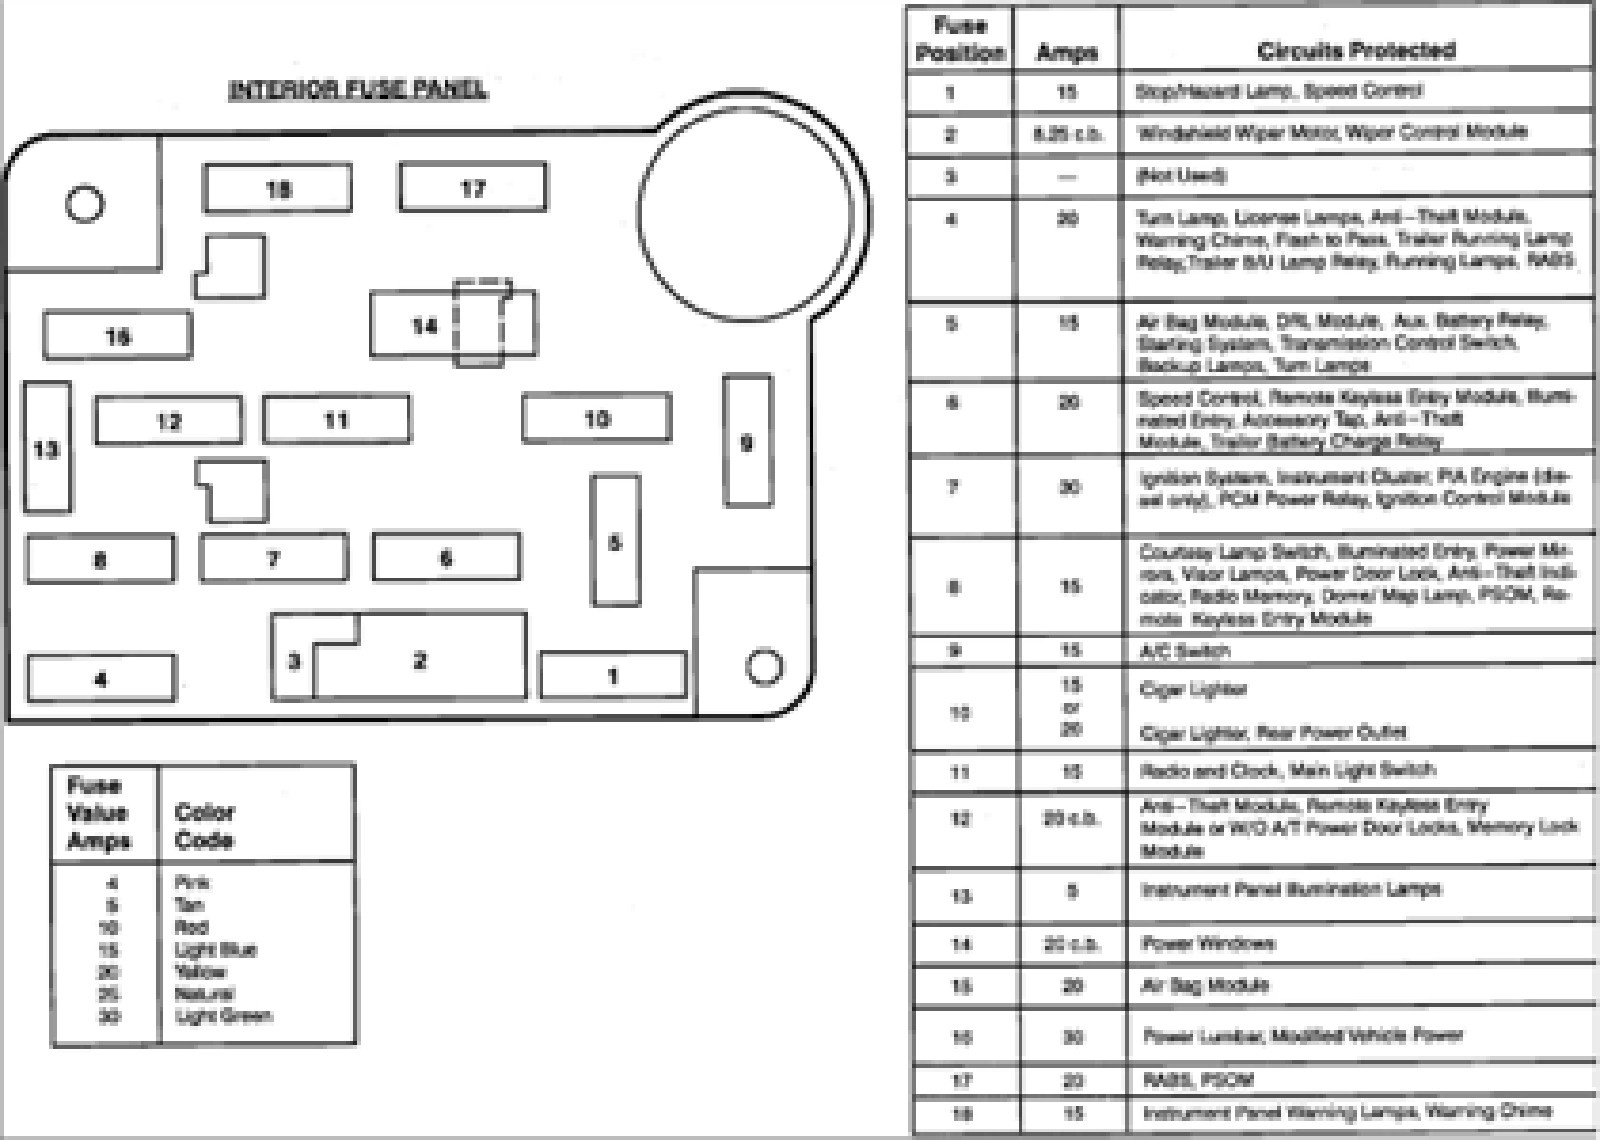 91 Lincoln Town Car Fuse Box Diagram | Wiring Diagram on lincoln town car starter relay location, buick lacrosse wiring diagram, lincoln town car belt diagram, ford econoline van wiring diagram, 1990 lincoln town car engine diagram, 1997 lincoln town car engine diagram, lincoln town car door, ford aerostar wiring diagram, pontiac trans sport wiring diagram, chrysler 300m wiring diagram, chevrolet volt wiring diagram, chevelle wiring diagram, mercury milan wiring diagram, lincoln town car engine swap, lincoln town car fuse diagram, dodge challenger wiring diagram, 1998 lincoln town car engine diagram, hyundai veracruz wiring diagram, lincoln town car lights, lincoln town car fuel pump relay,